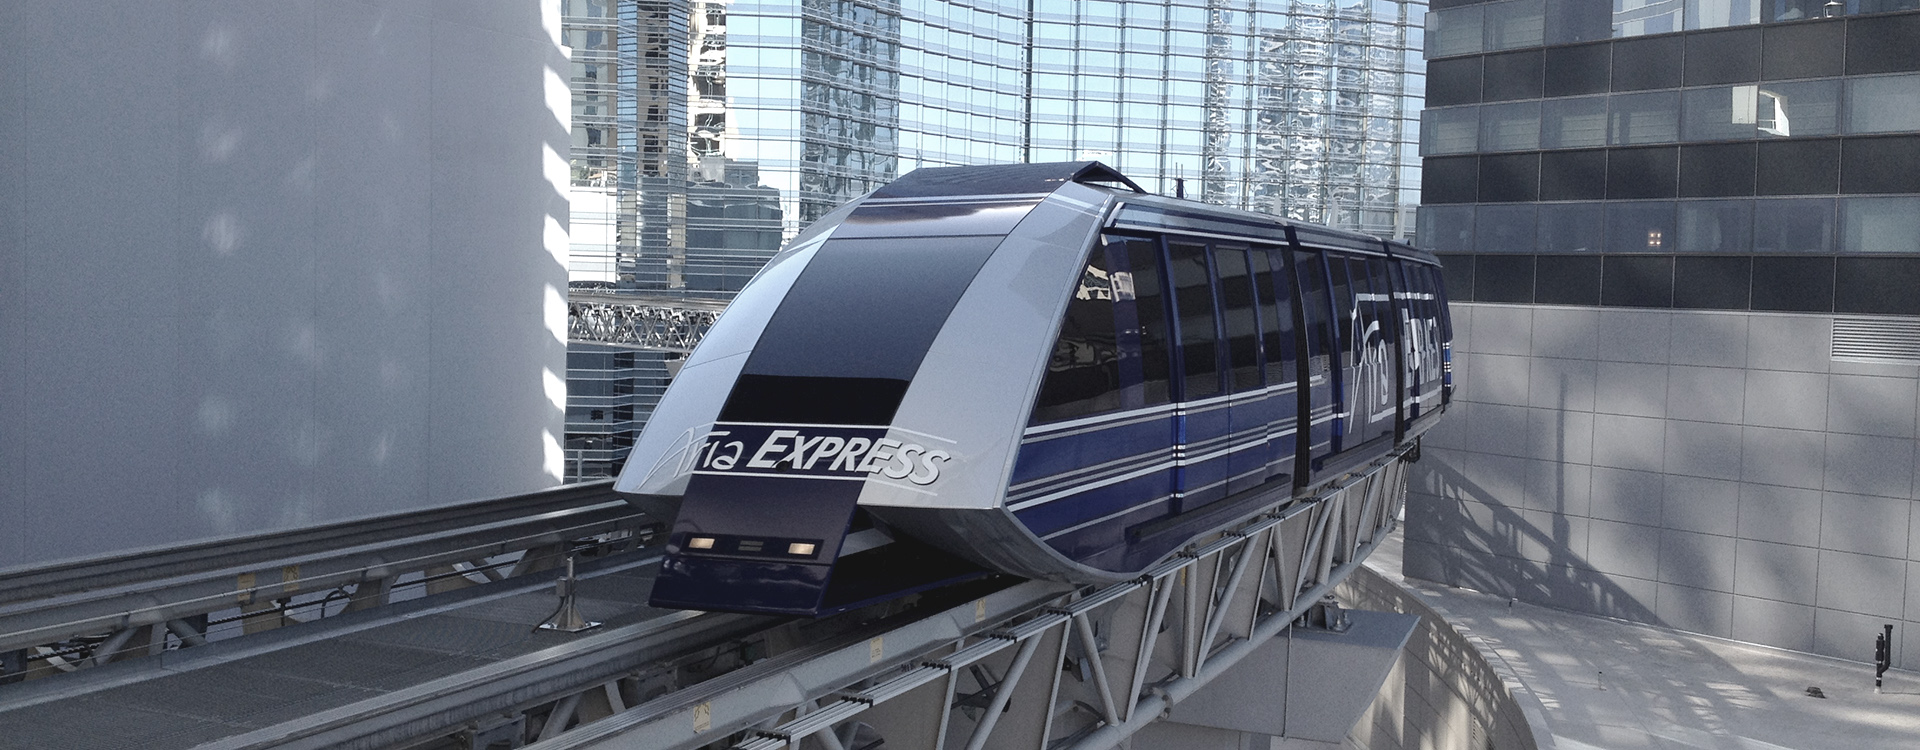 Automated People Mover travelling above ground through Las Vegas